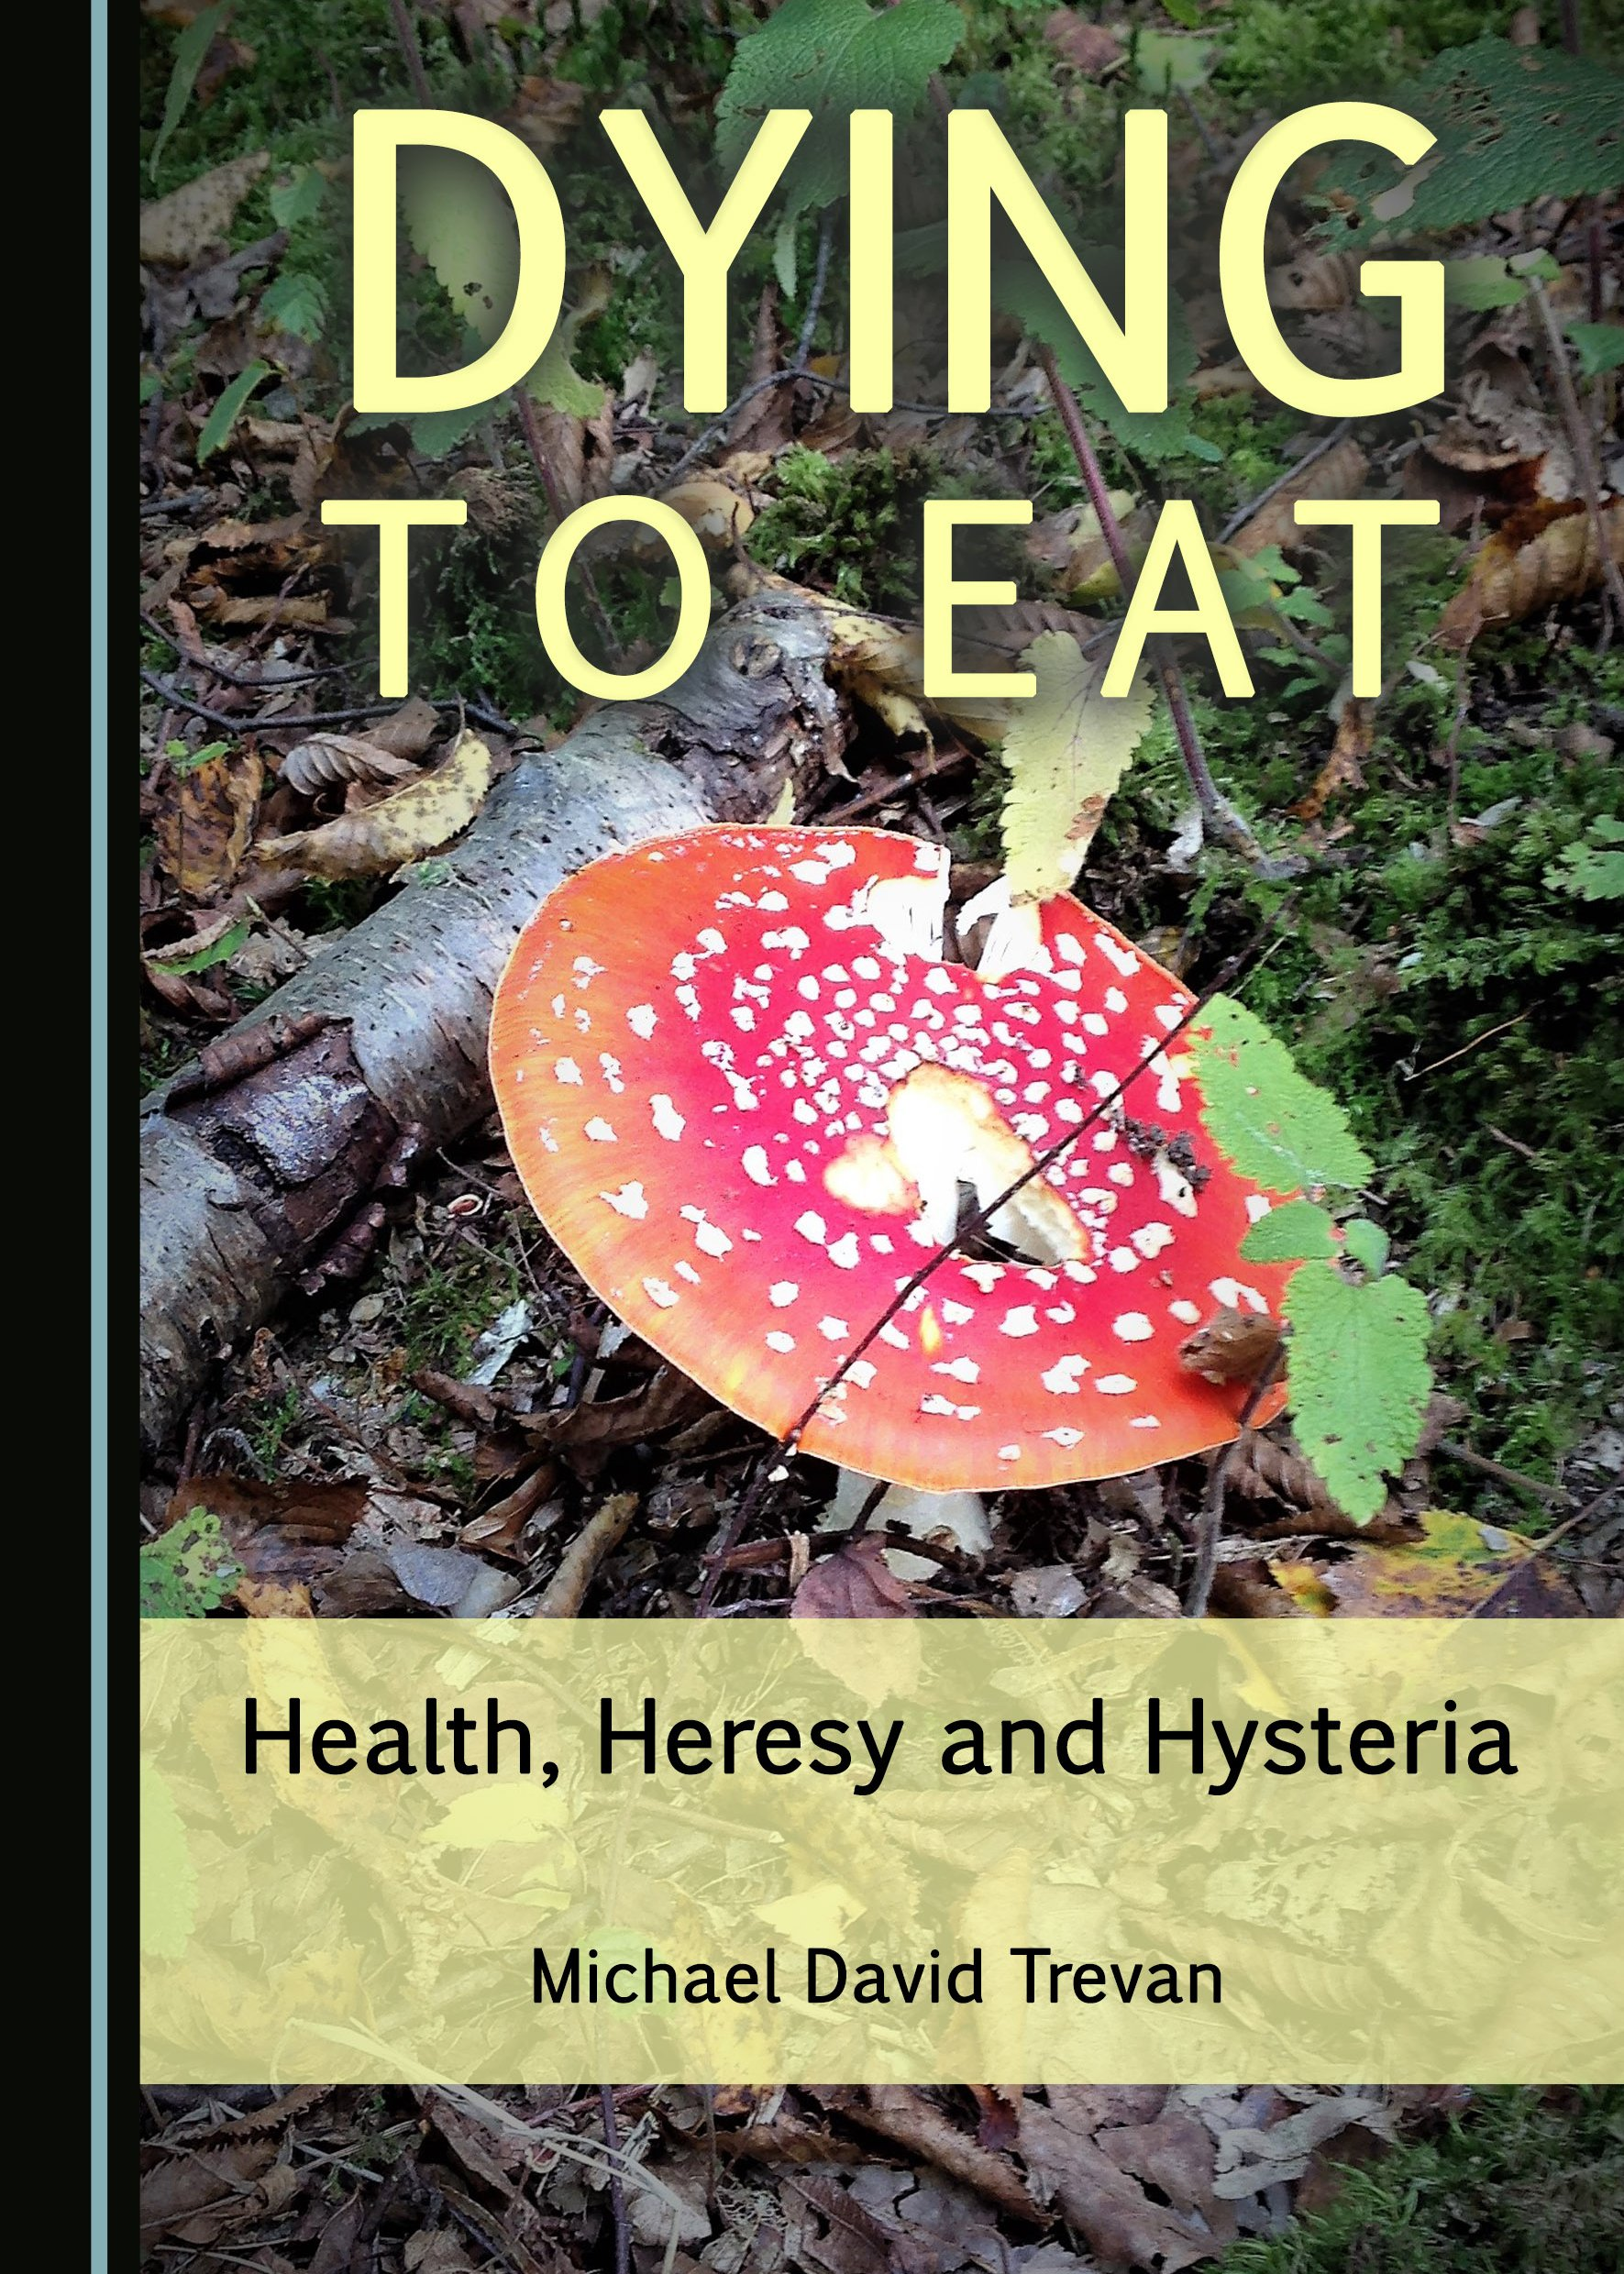 Dying to Eat: Health, Heresy and Hysteria